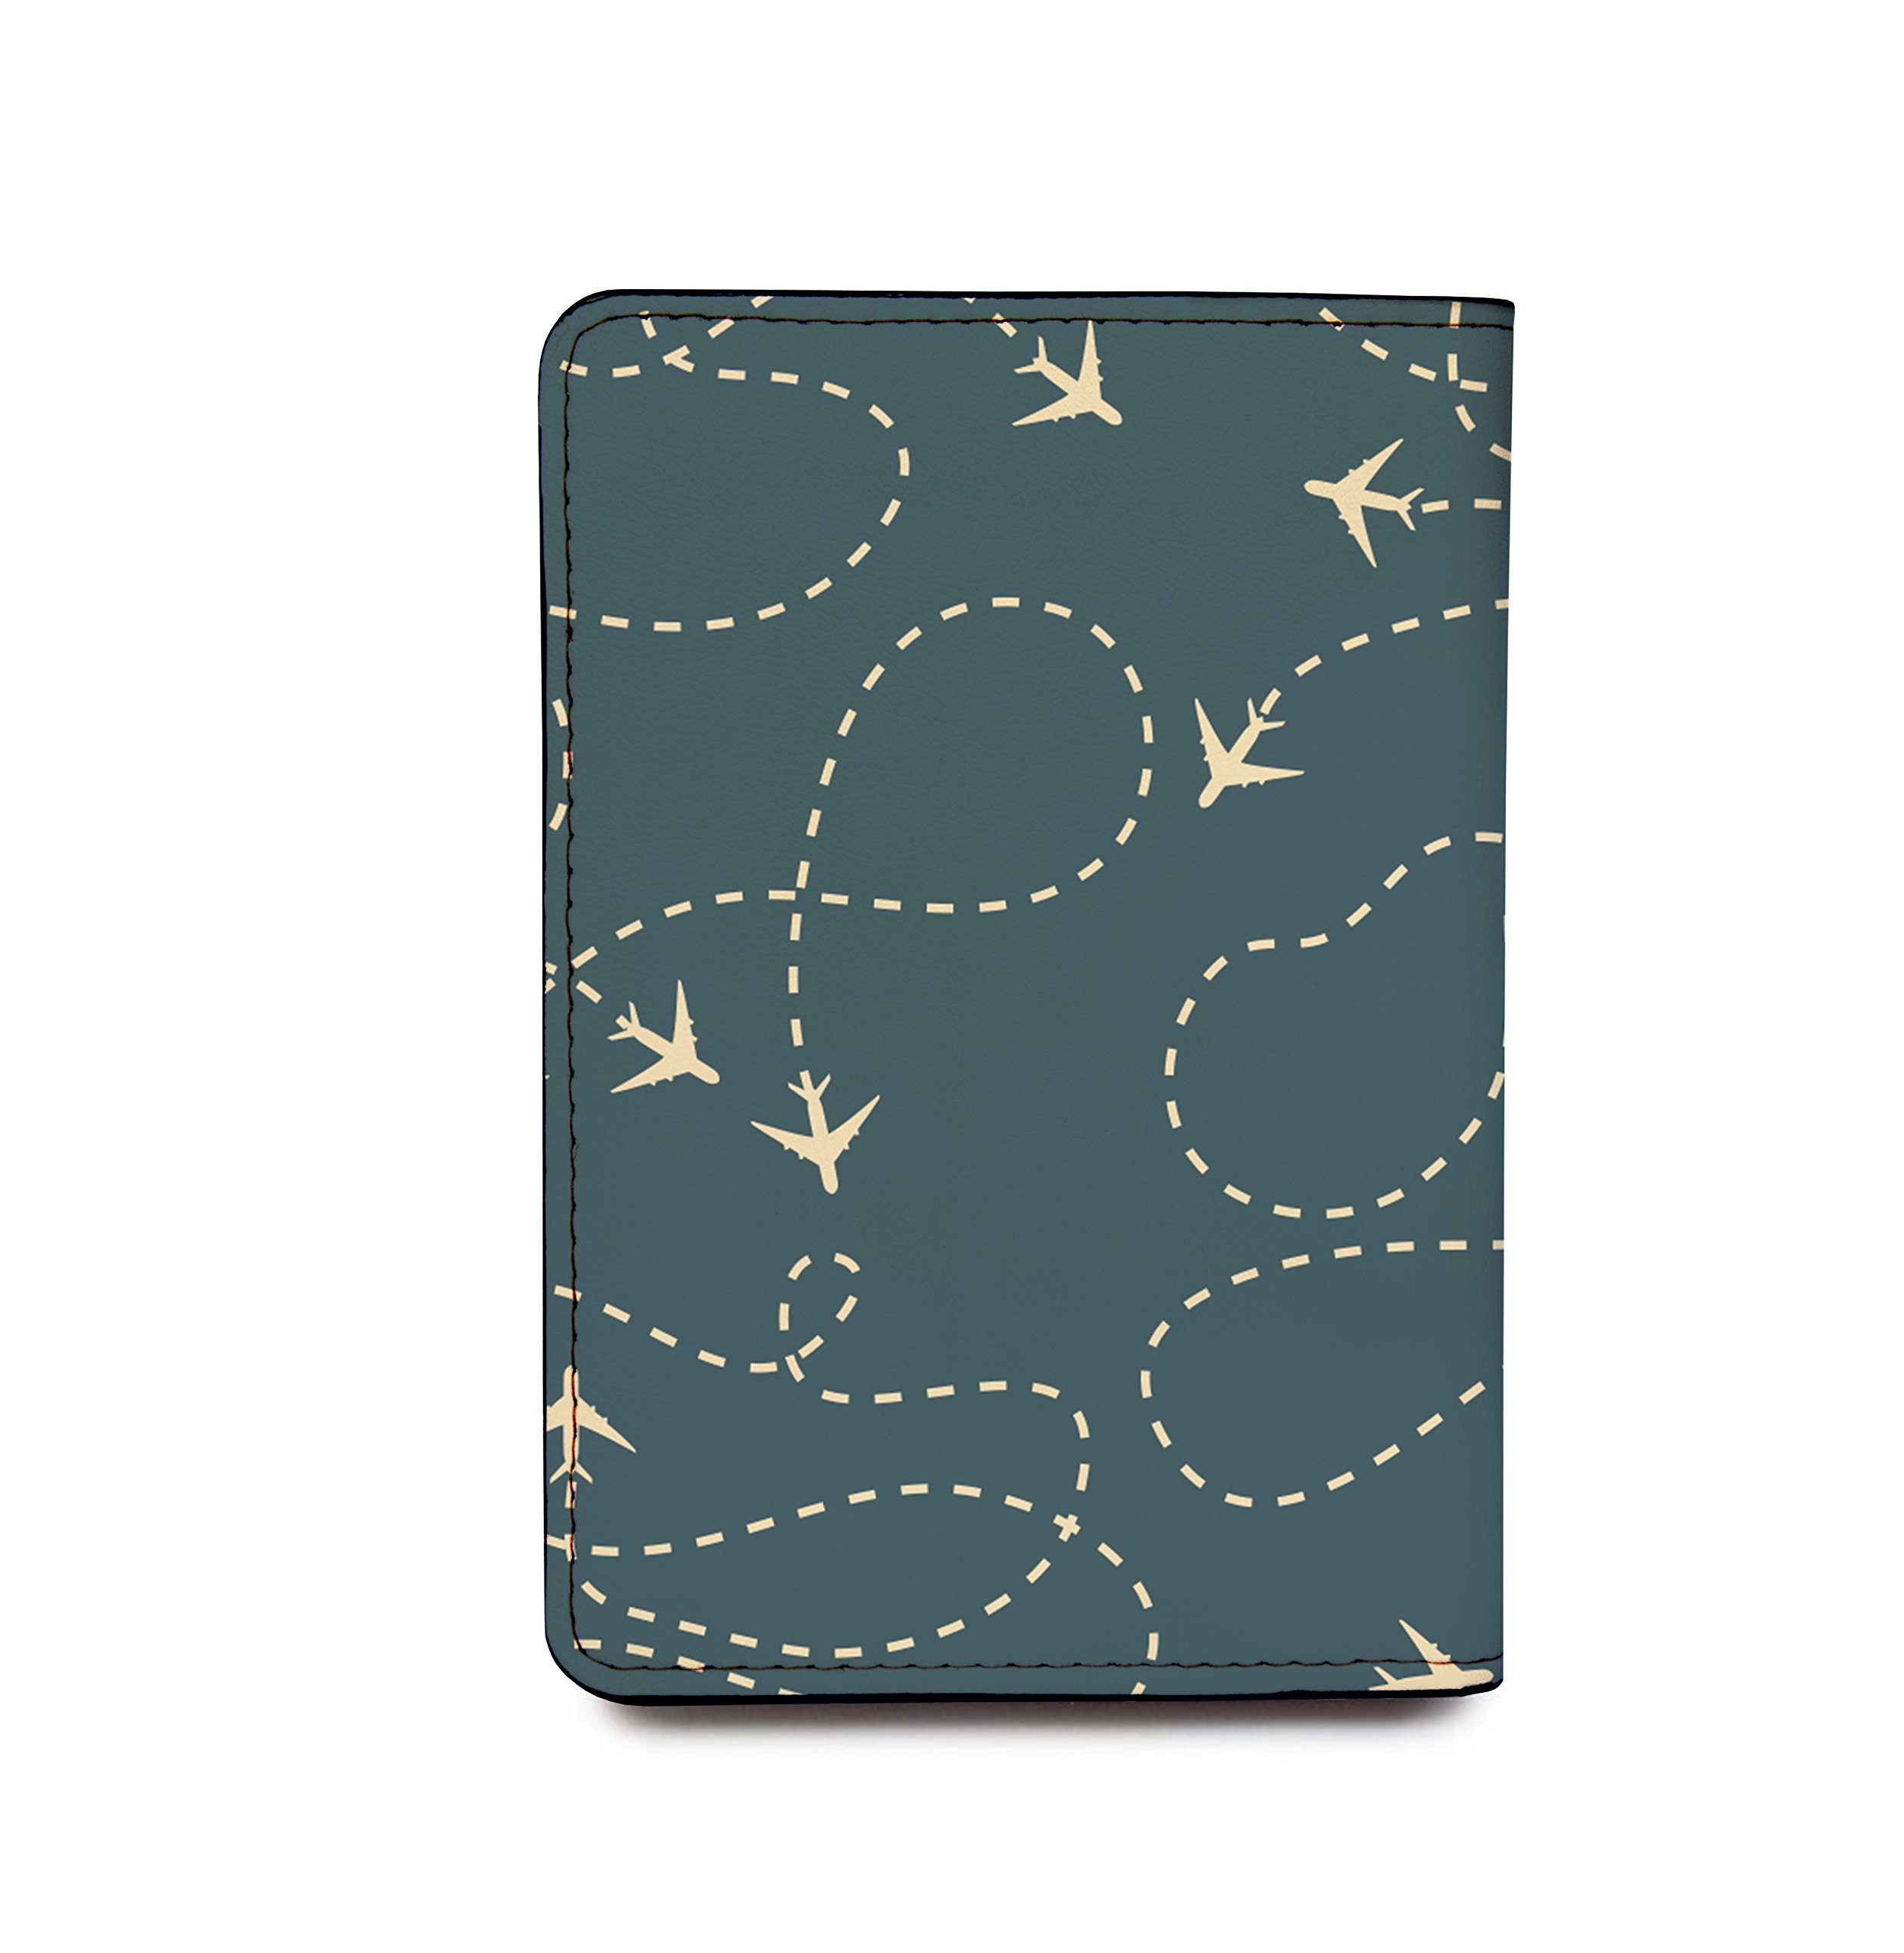 Customized RFID Blocking Leather Passport Holder Airplanes by With Love From Julie (Image #4)